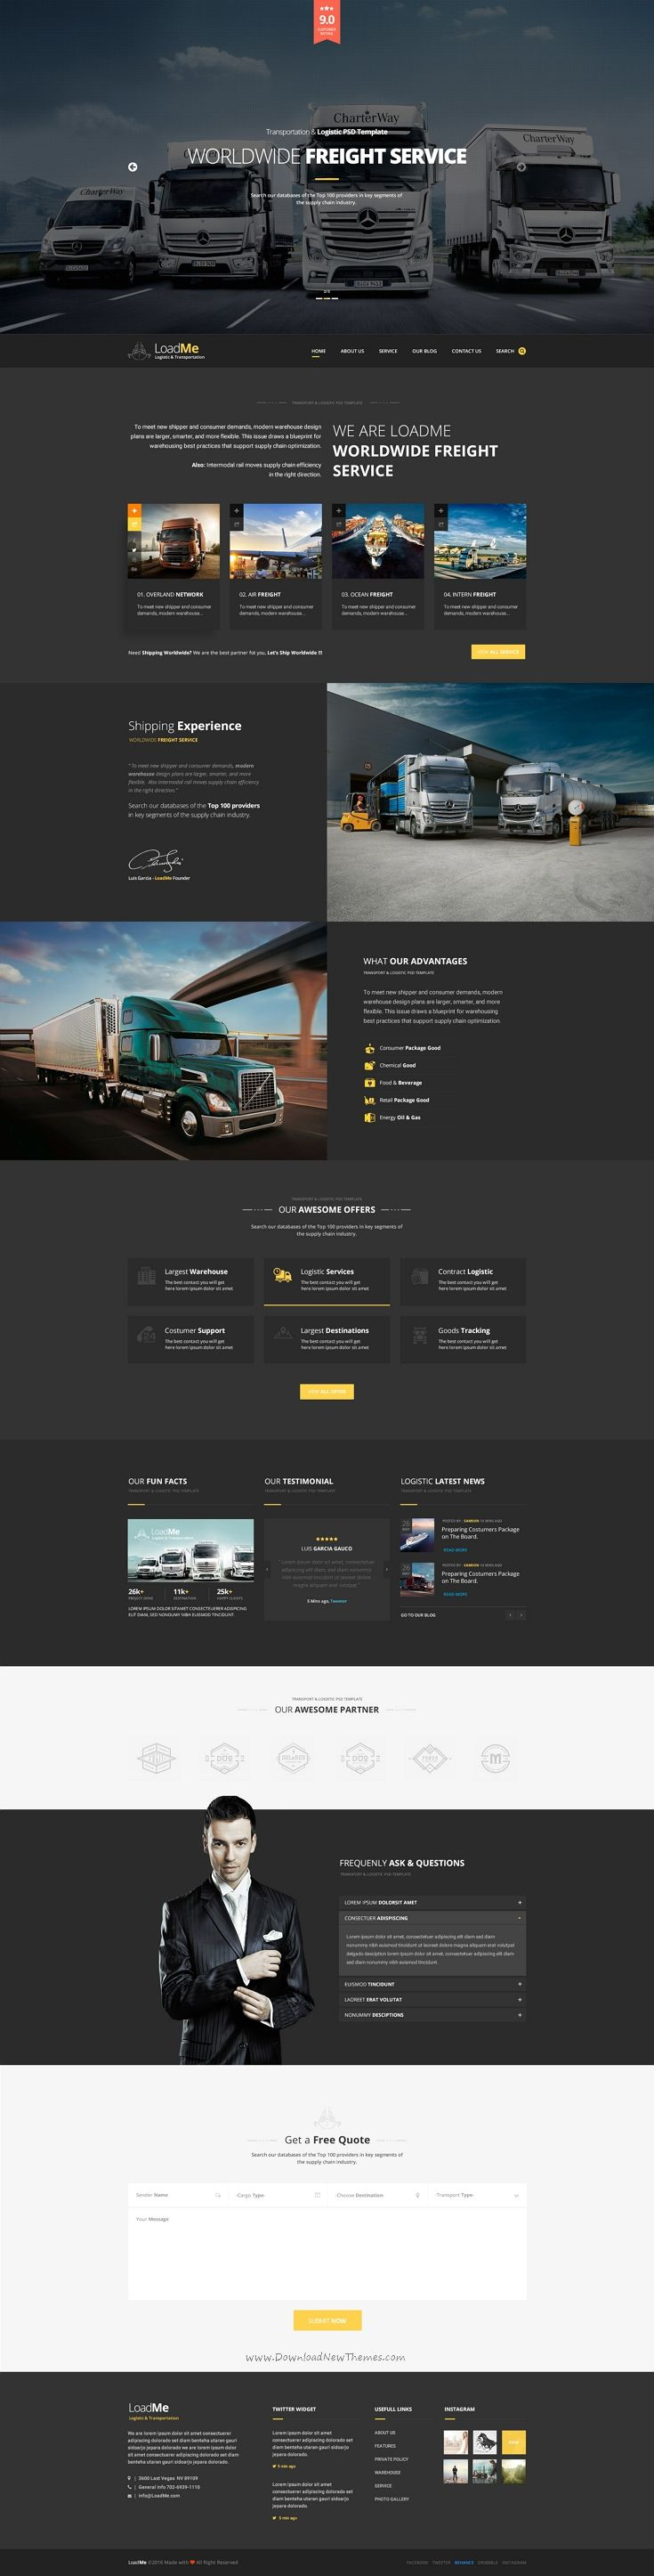 7887 best Site & Landing Page Templates images on Pinterest ...